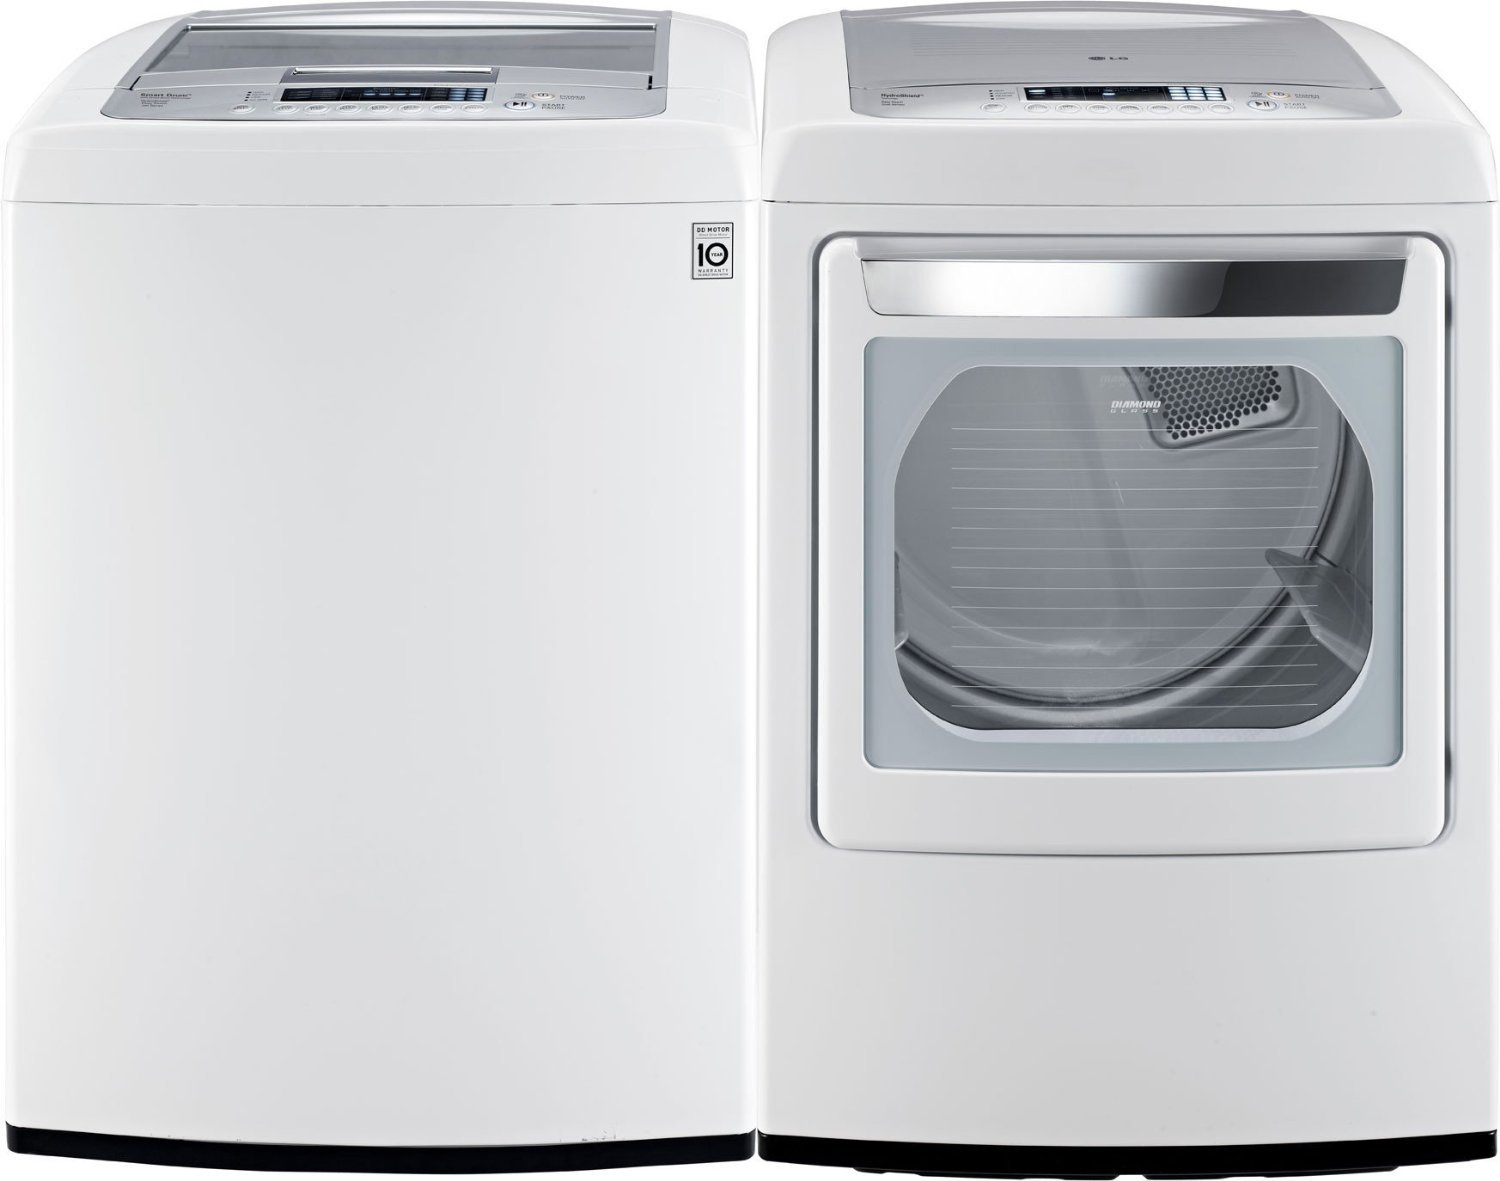 Lg 2 3 cu ft all in one washer and dryer - Amazon Com Lg Pair Buy Front Control Laundry Pair With Waveforce Technology With Electric Dryer Wt1201cw Dley1201w In Classic White Appliances